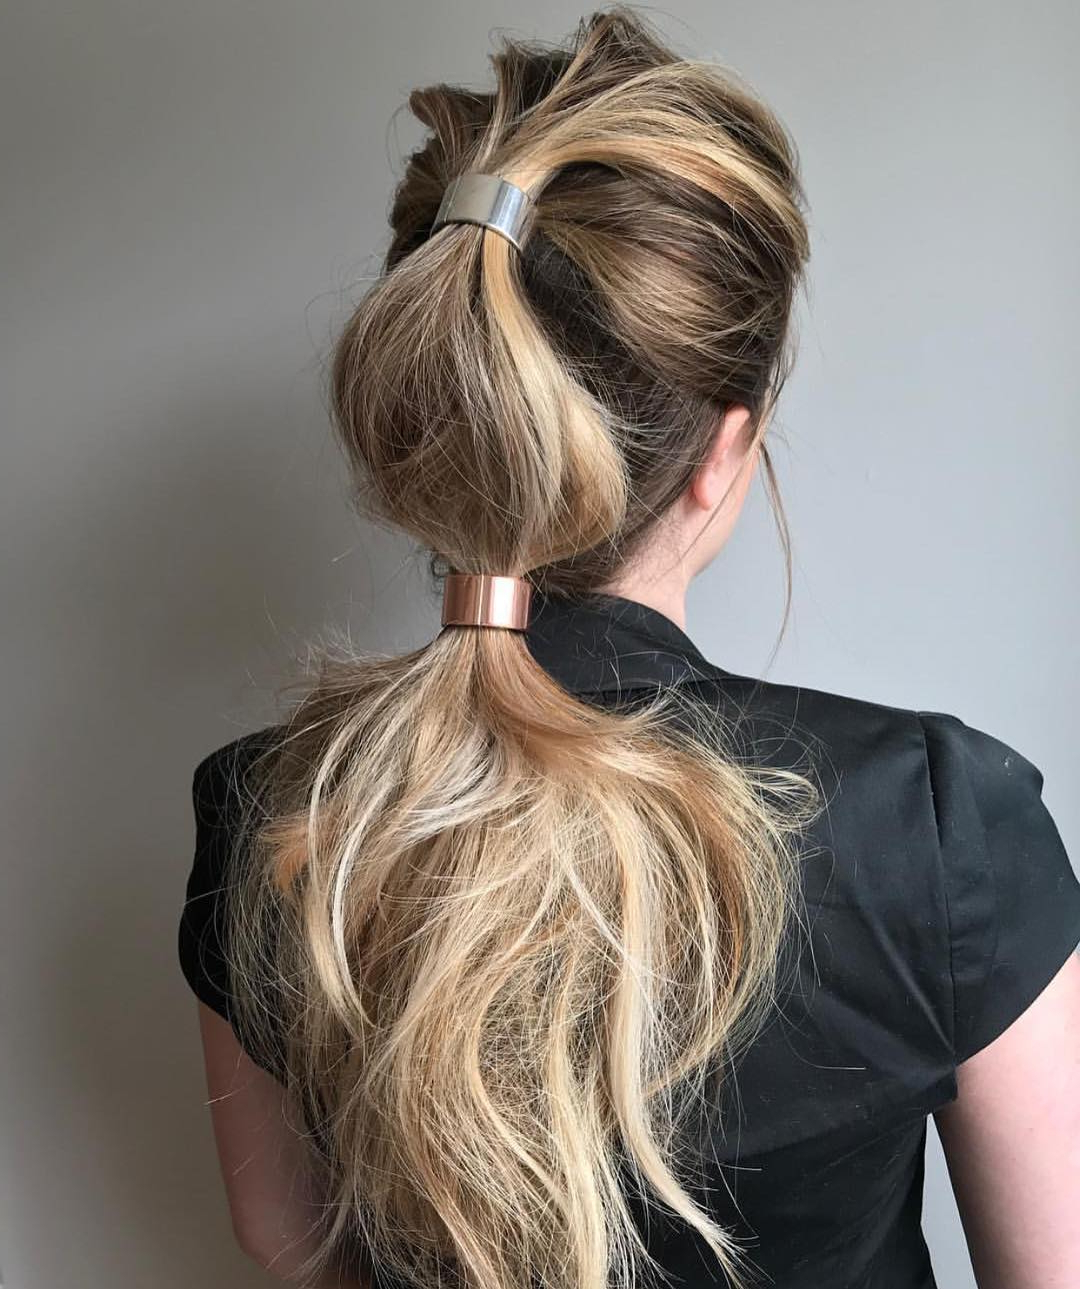 10 Trendiest Ponytail Hairstyles For Long Hair 2019 – Easy With Favorite Loosely Tied Braided Hairstyles With A Ribbon (View 2 of 20)